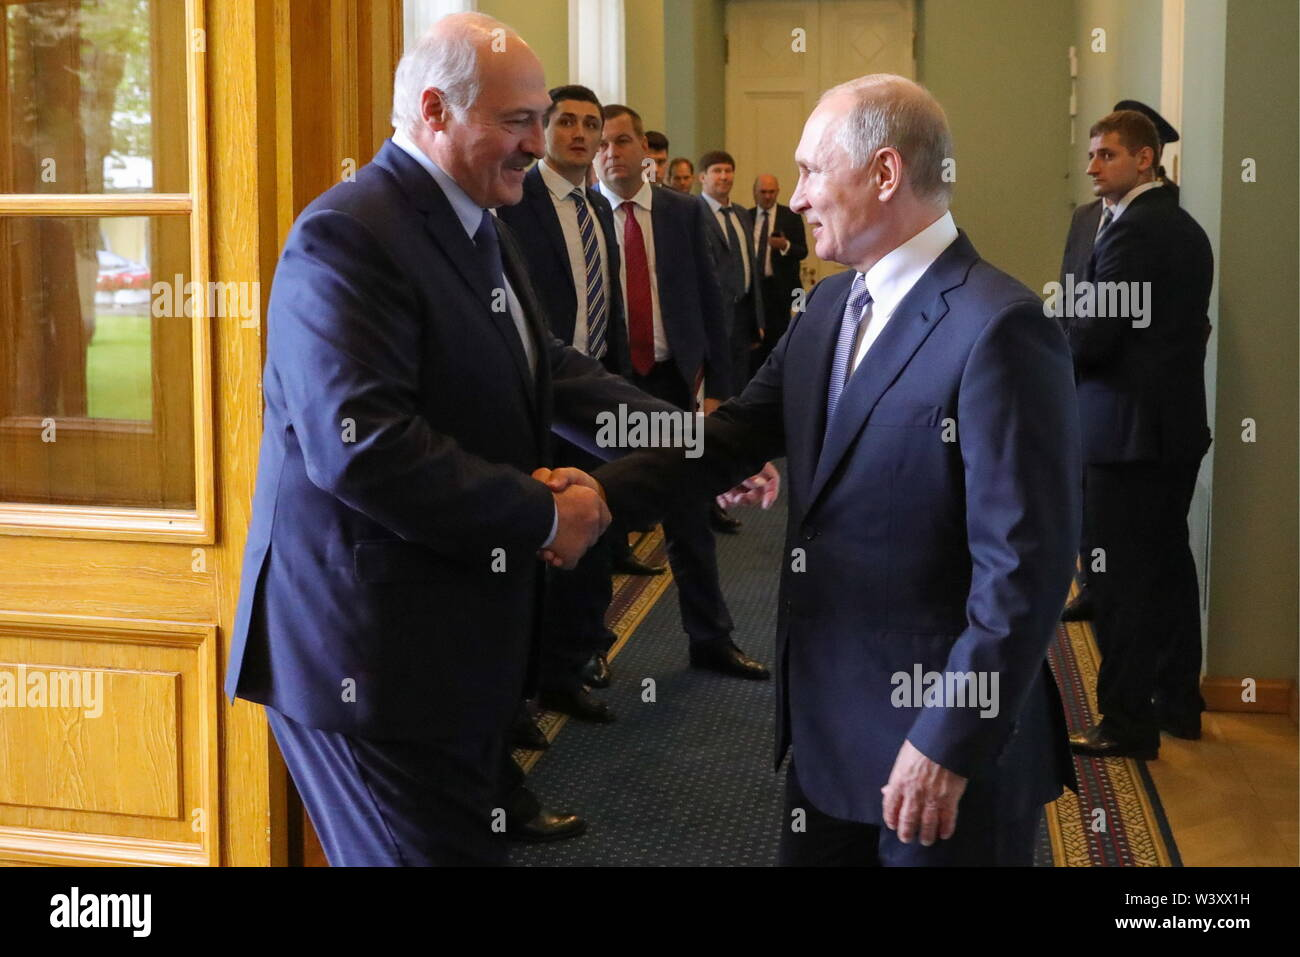 St Petersburg, Russia. 18th July, 2019. ST PETERSBURG, RUSSIA - JULY 18, 2019: Belarus' President Alexander Lukashenko (L) and Russia's President Vladimir Putin shake hands during a meeting at Tauride Palace. Mikhail Klimentyev/Russian Presidential Press and Information Office/TASS Credit: ITAR-TASS News Agency/Alamy Live News - Stock Image